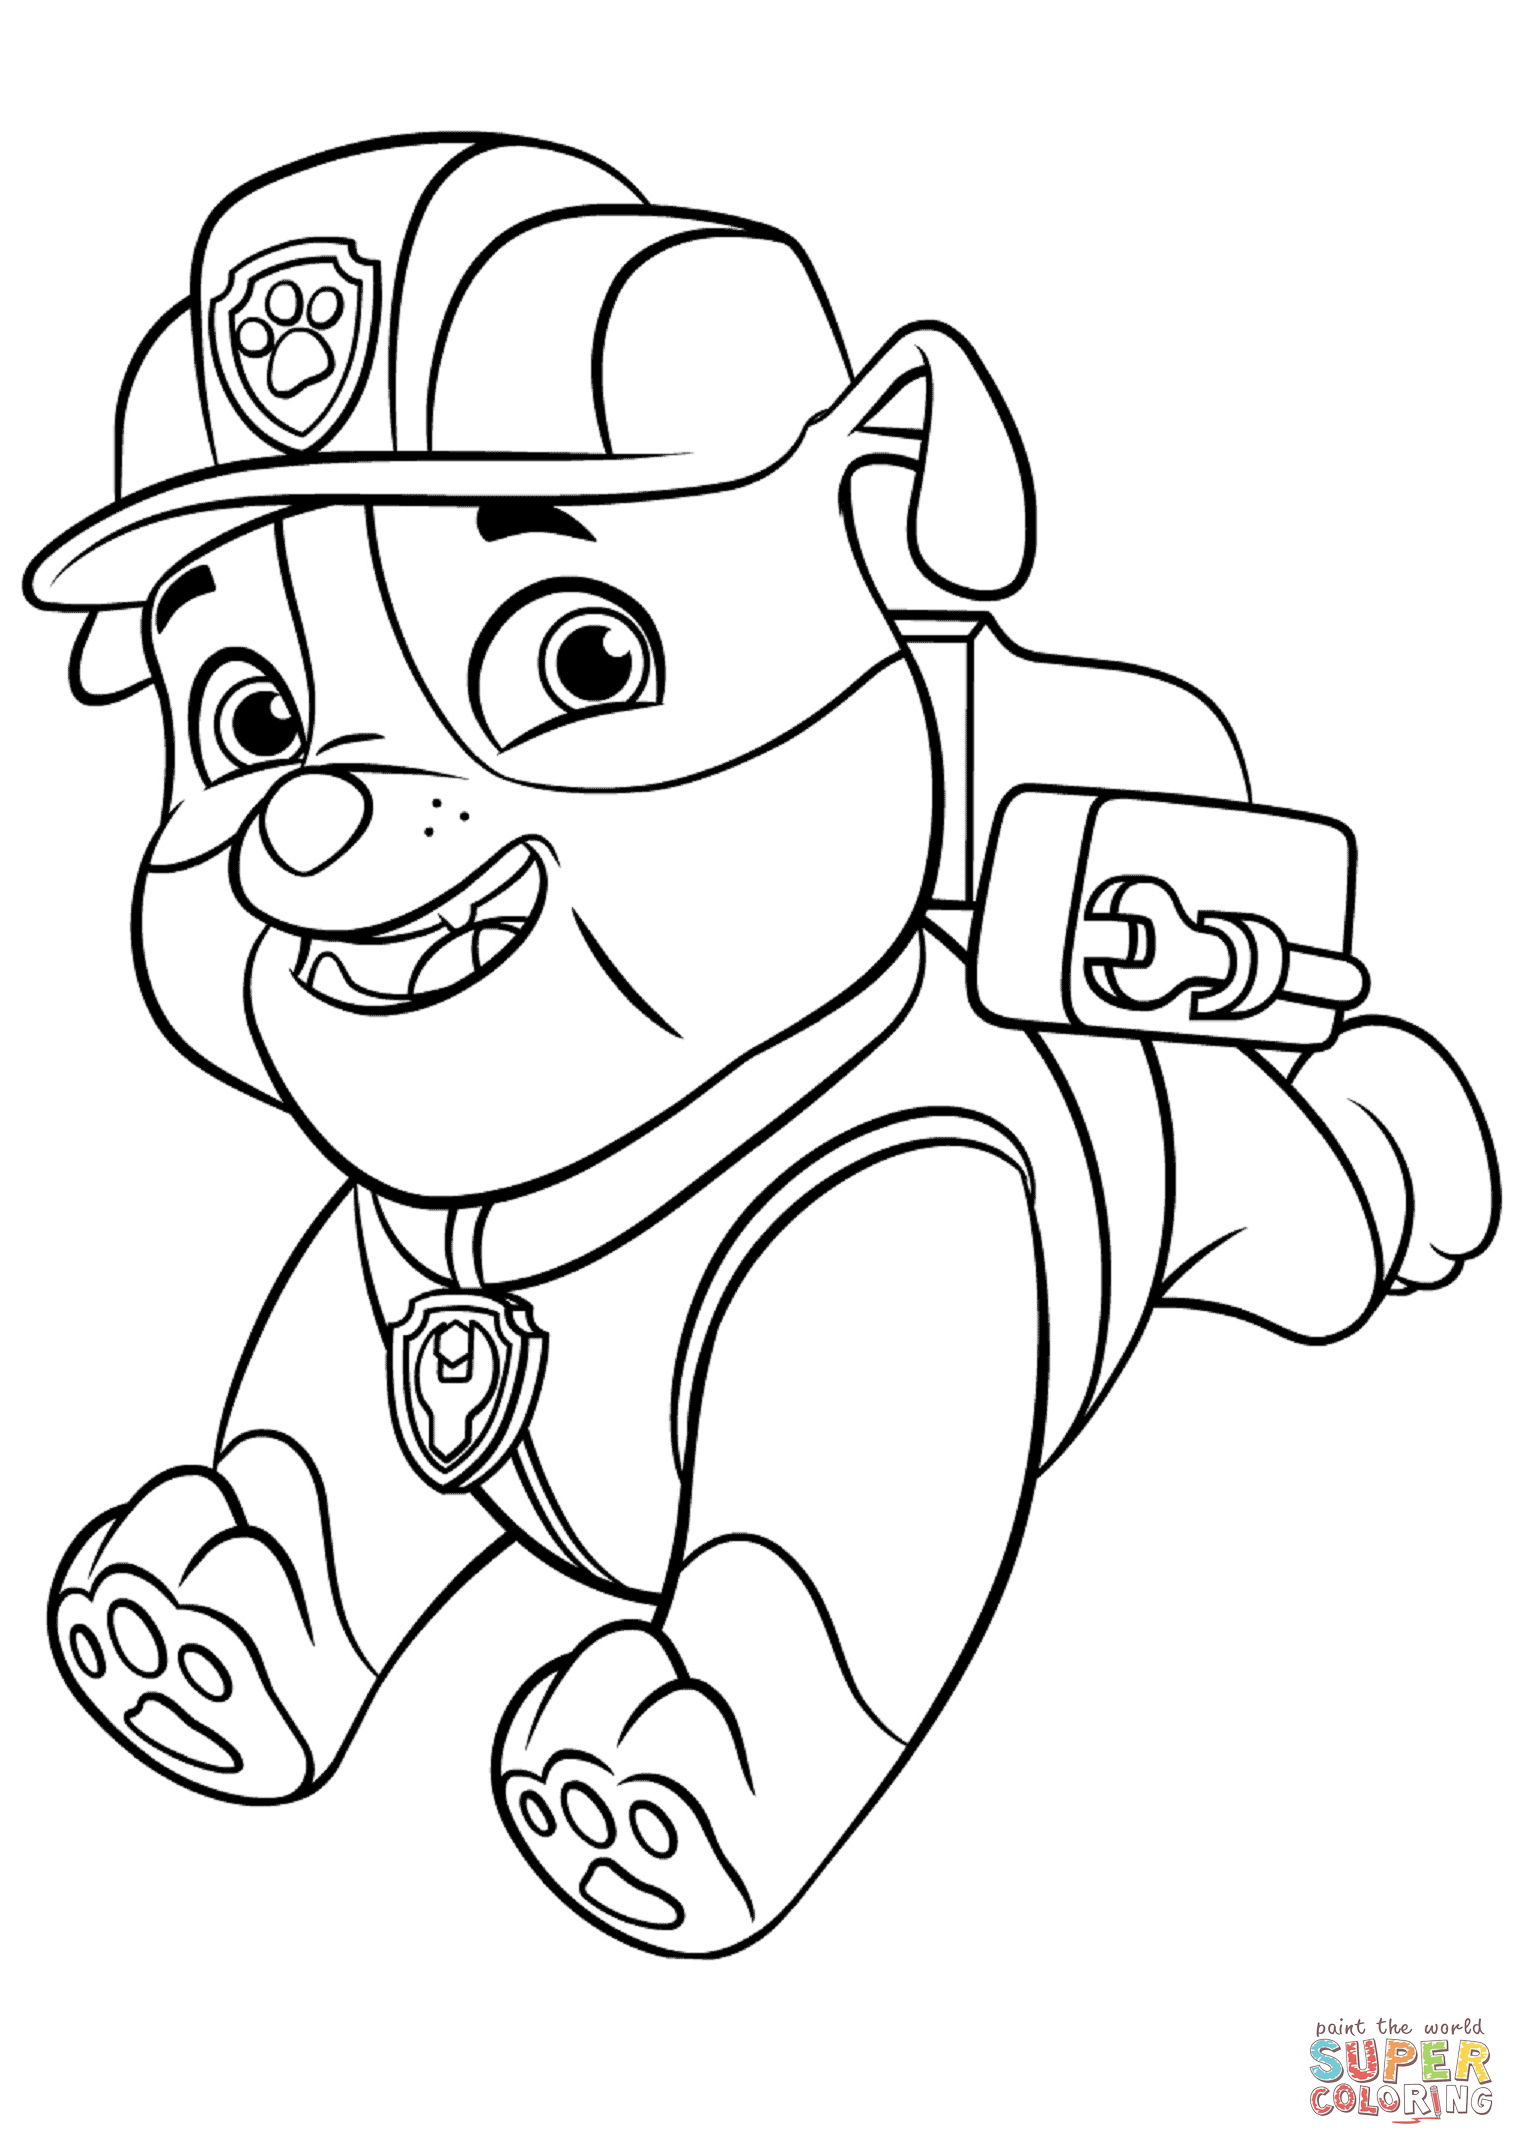 Paw patrol rubble with backpack coloring page free printable